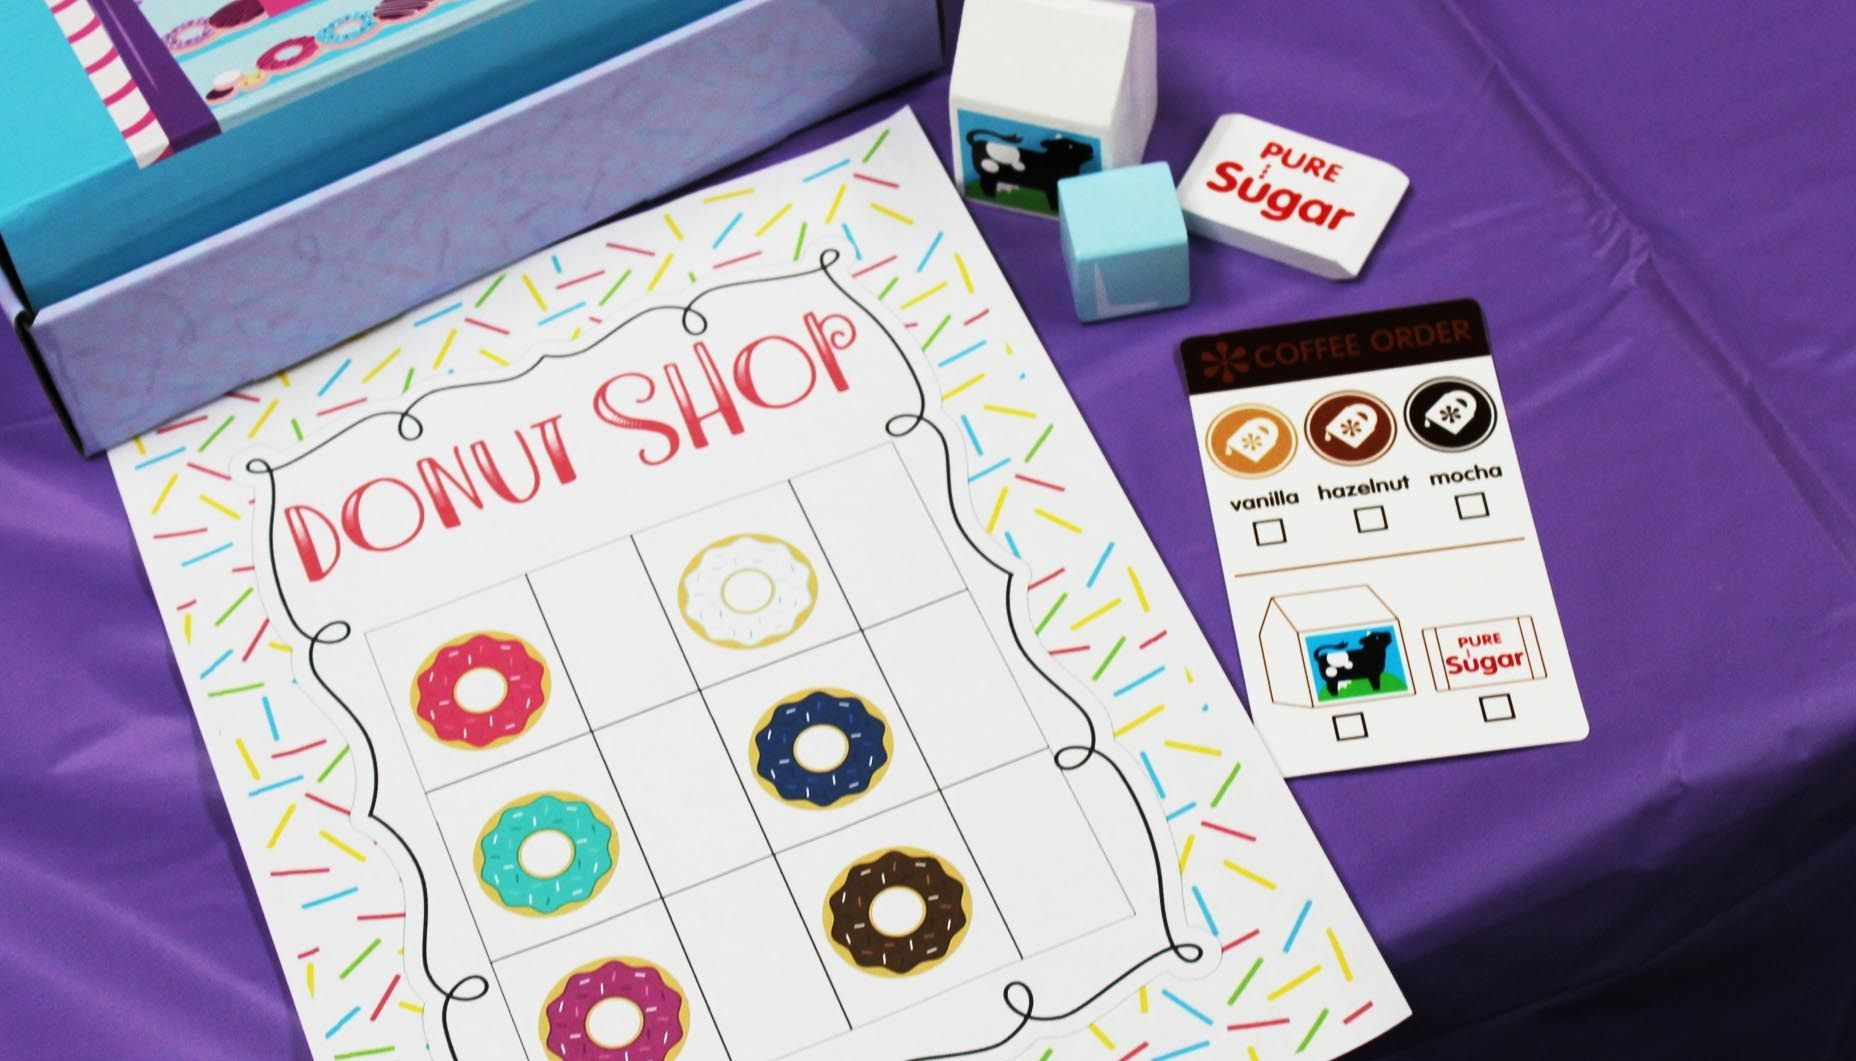 Turn Your Classroom Into A Donut Shop, With This Fun